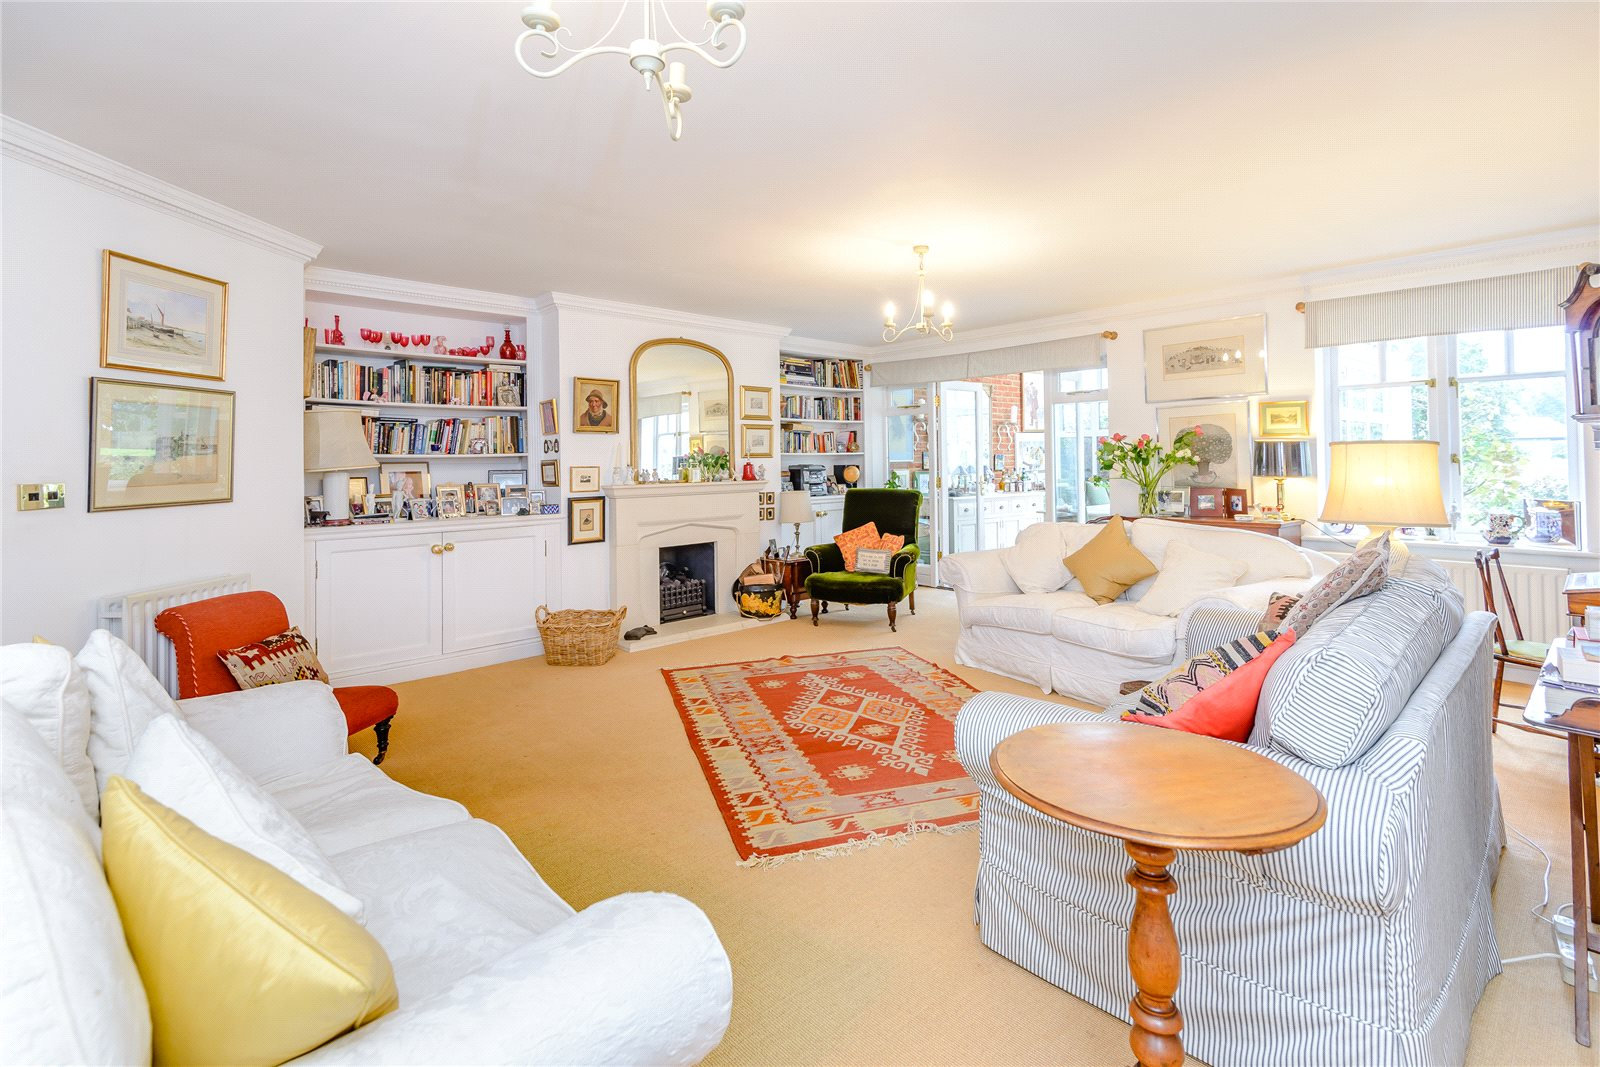 Single Family Home for Sale at Archery Place, Gomshall, Guildford, Surrey, GU5 Guildford, England